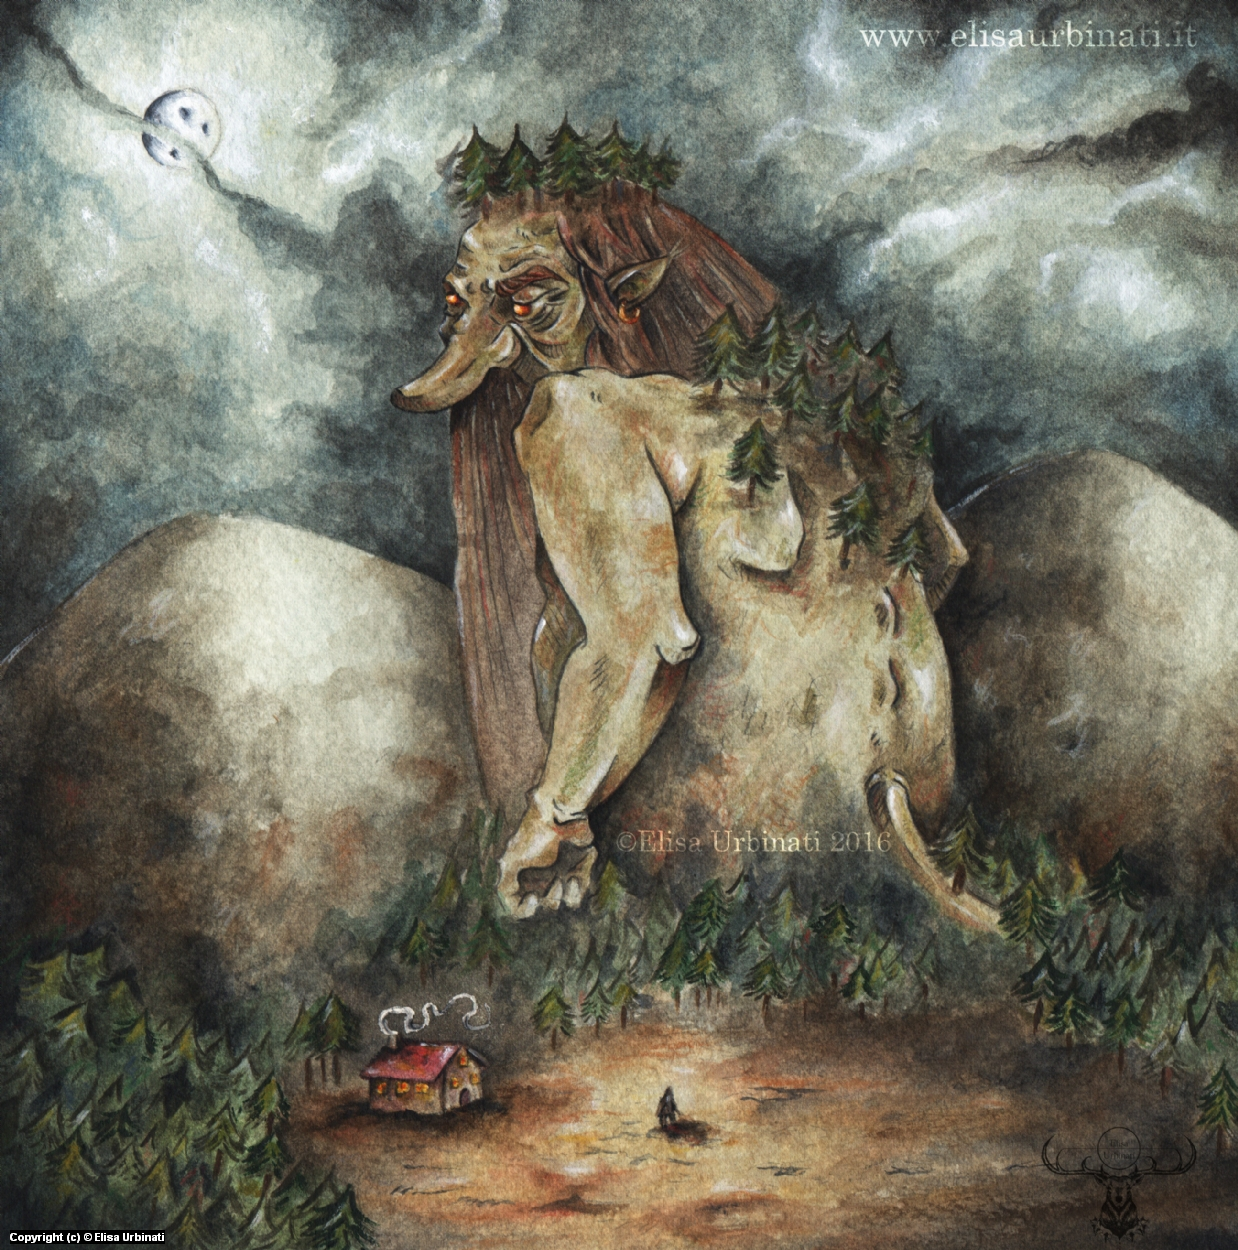 Under The Mountain Troll Artwork by Elisa Urbinati